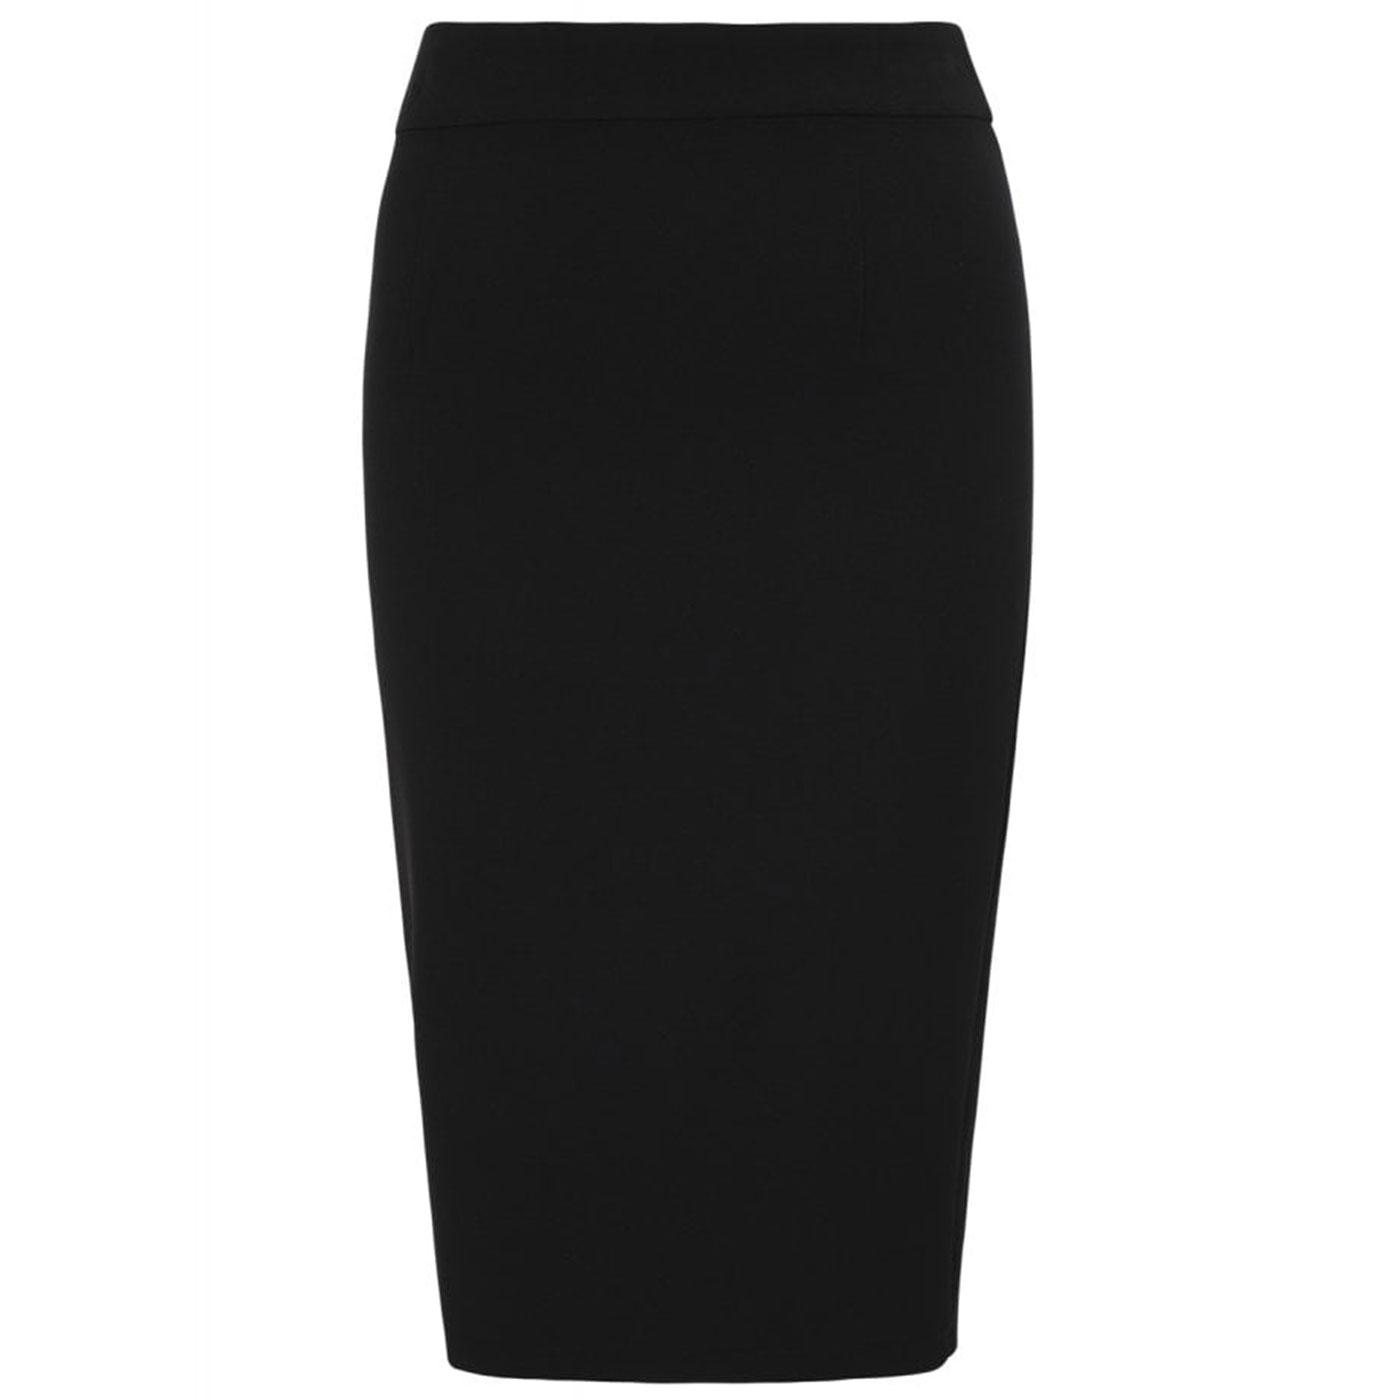 Polly COLLECTIF 50s Vintage Pencil Skirt in Black